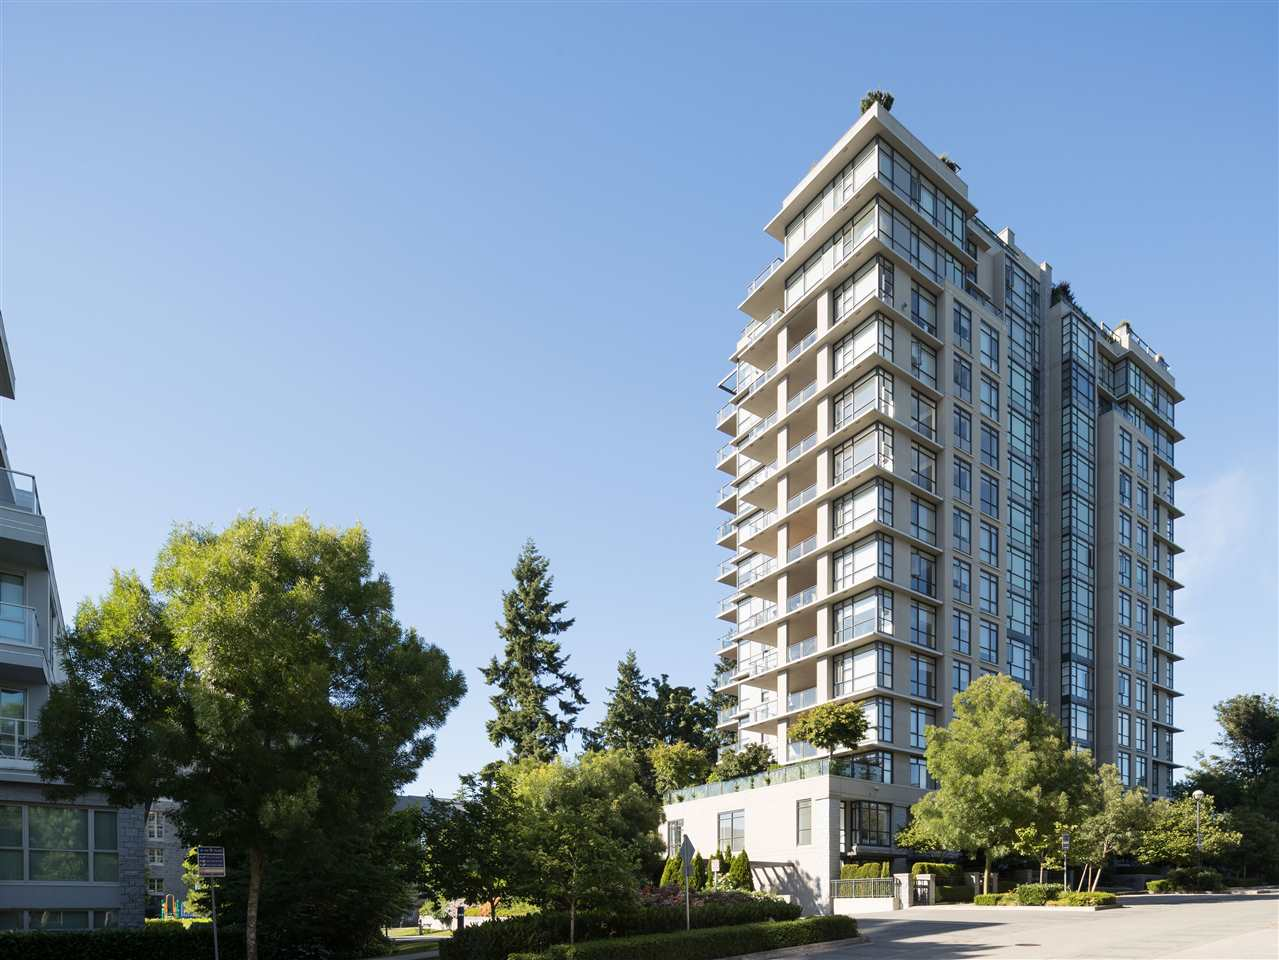 Condo Apartment at TH8 5991 WALTER GAGE ROAD, Unit TH8, Vancouver West, British Columbia. Image 1